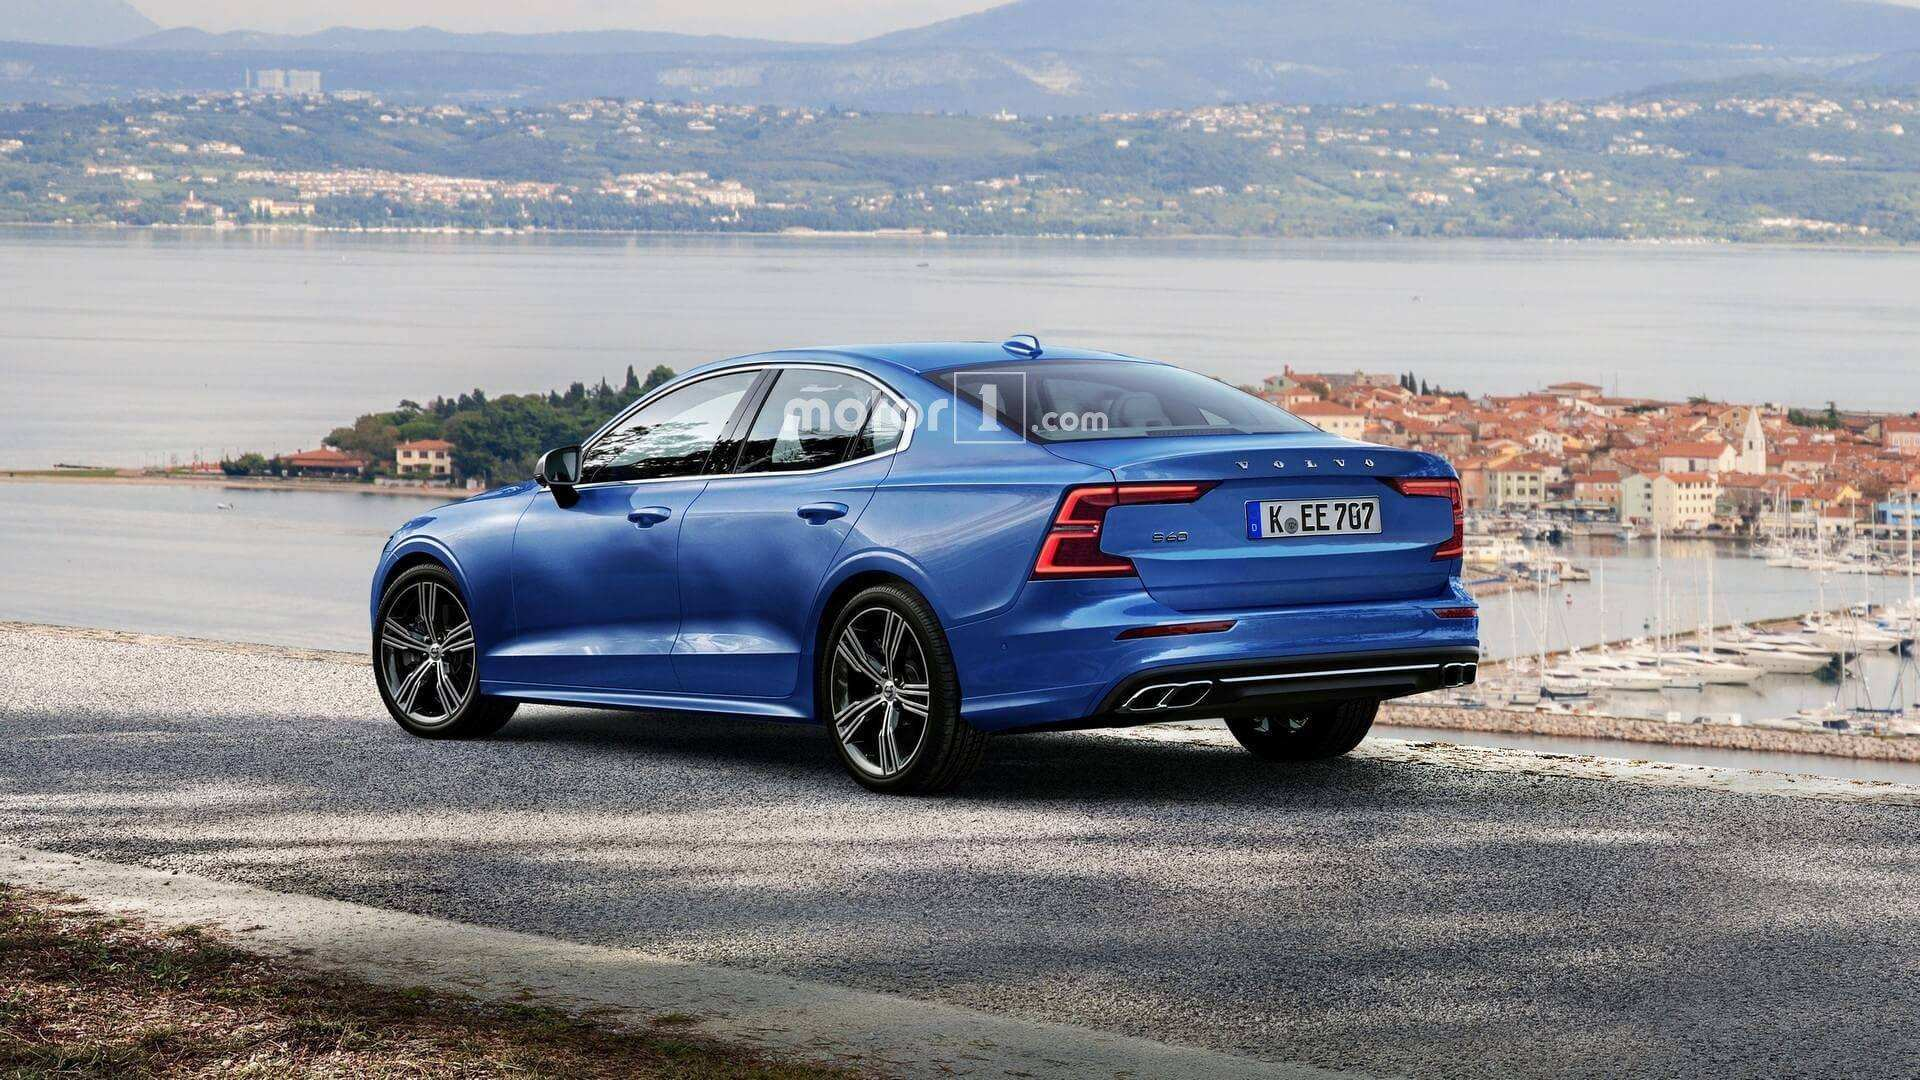 36 New Volvo S60 2019 Hybrid Redesign